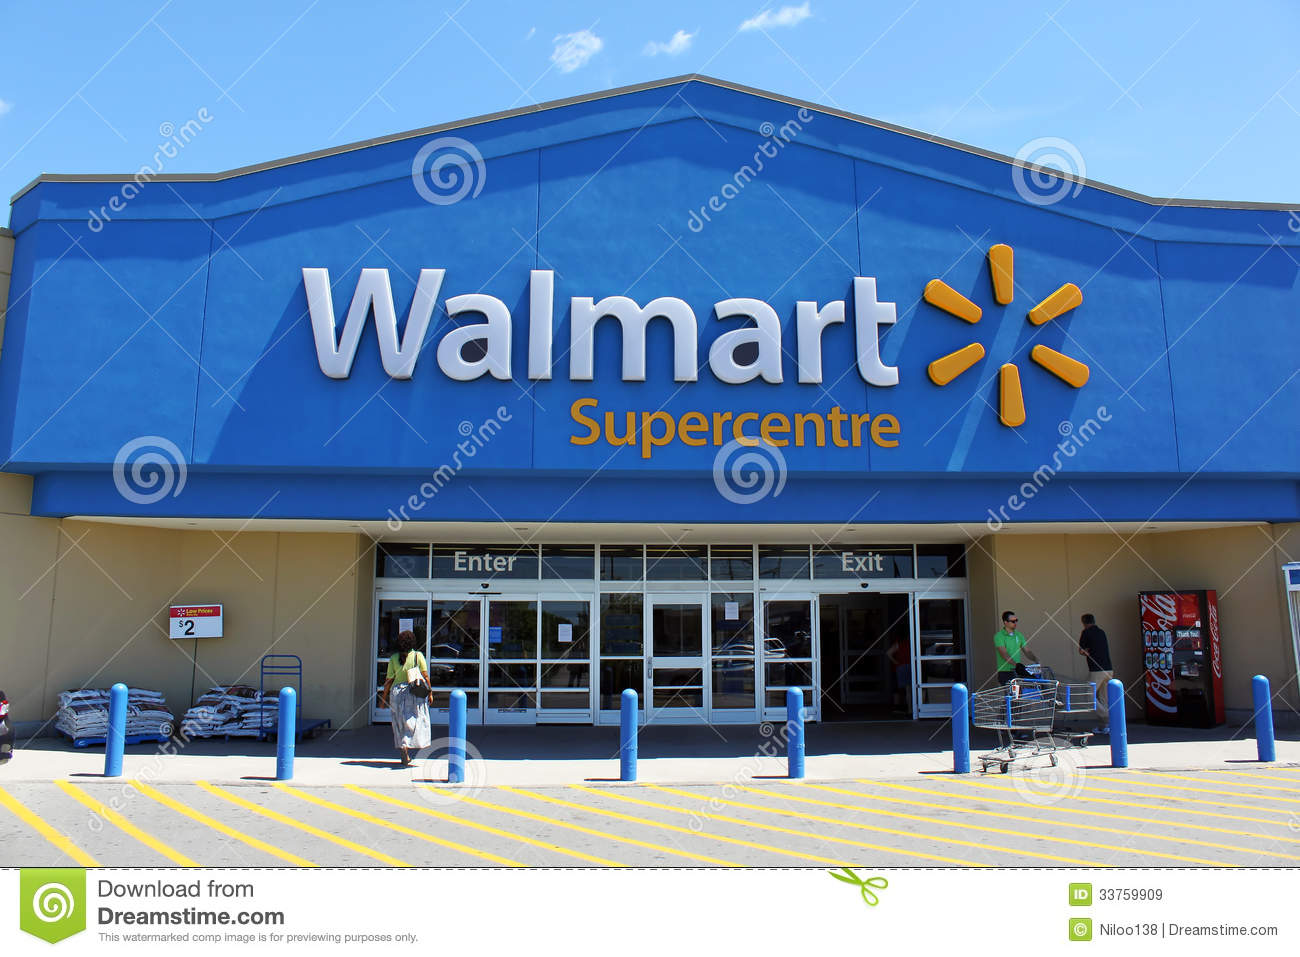 Nov 23, · Walmart Latest Breaking News, Pictures, Videos, and Special Reports from The Economic Times. Walmart Blogs, Comments and Archive News on cinema15.cf